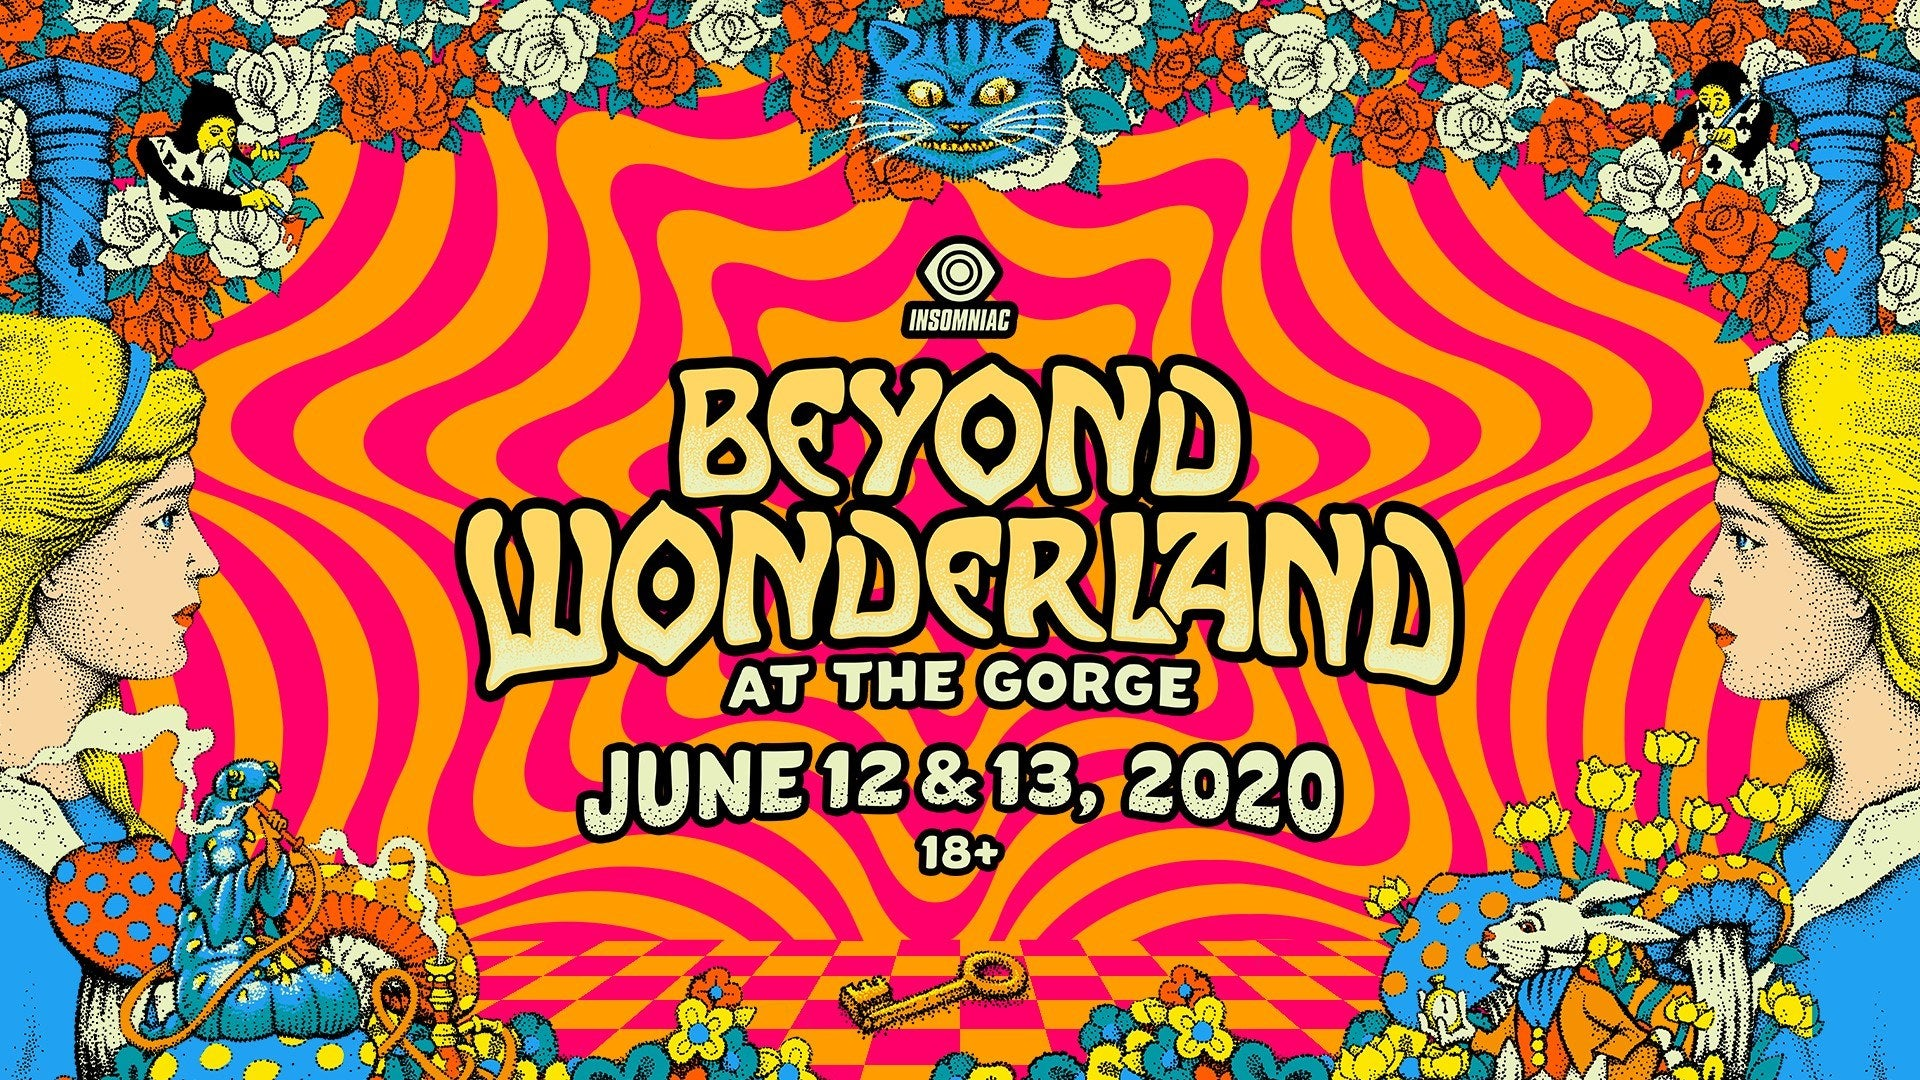 Beyond Wonderland at the Gorge Lineup & What to Expect in the Pacific Northwest